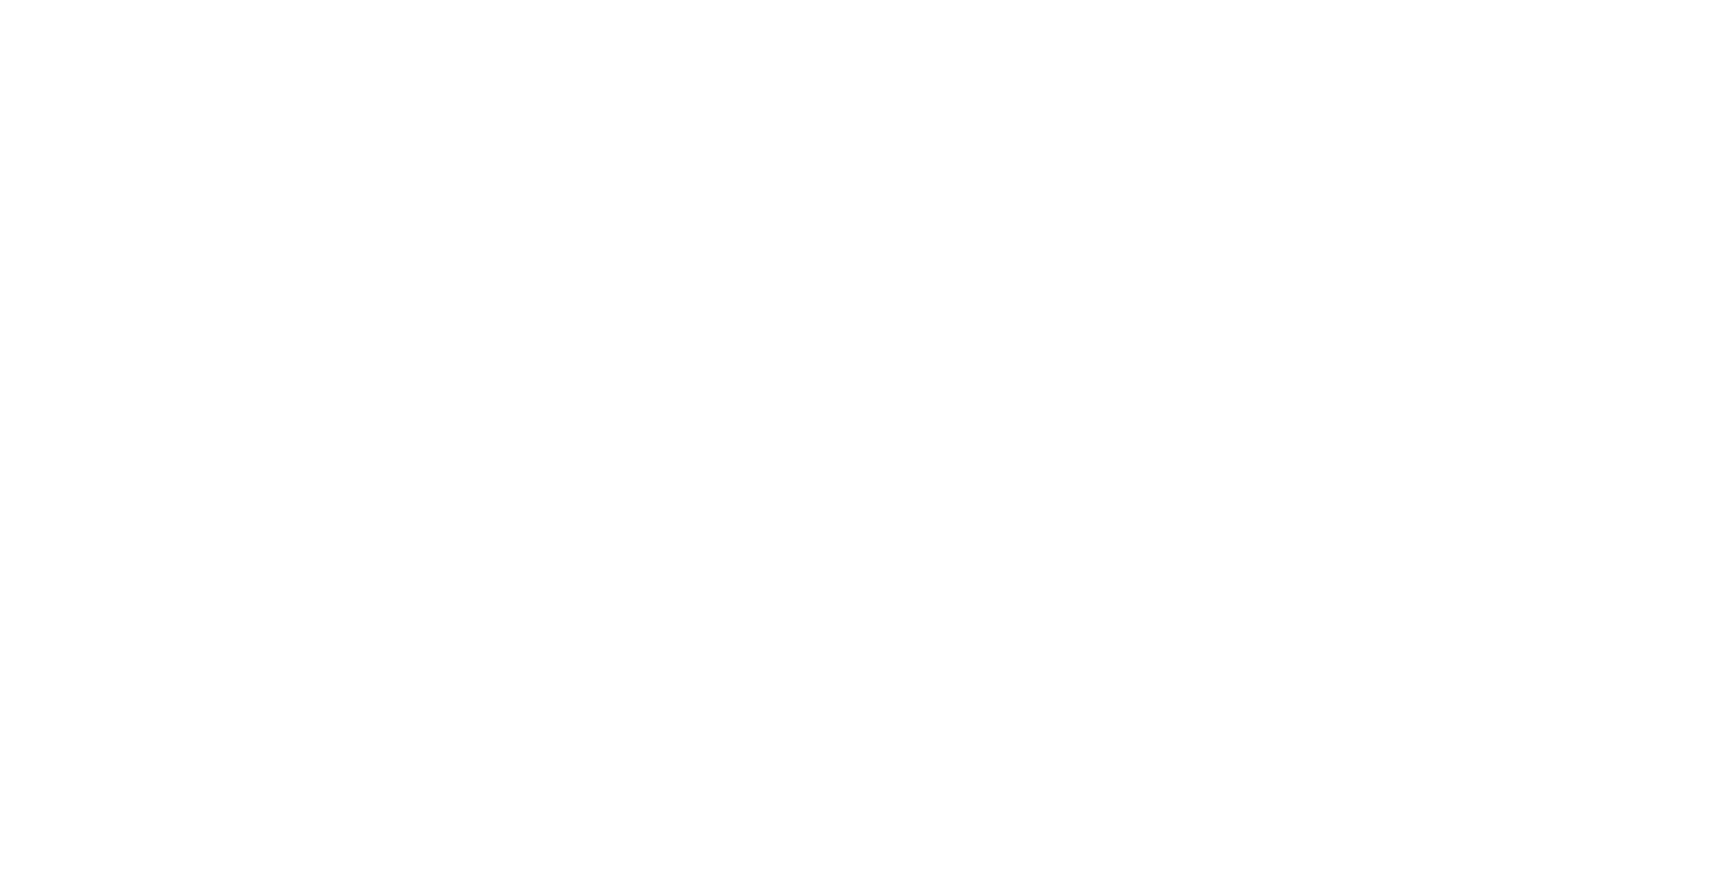 Mamounia Lounge London